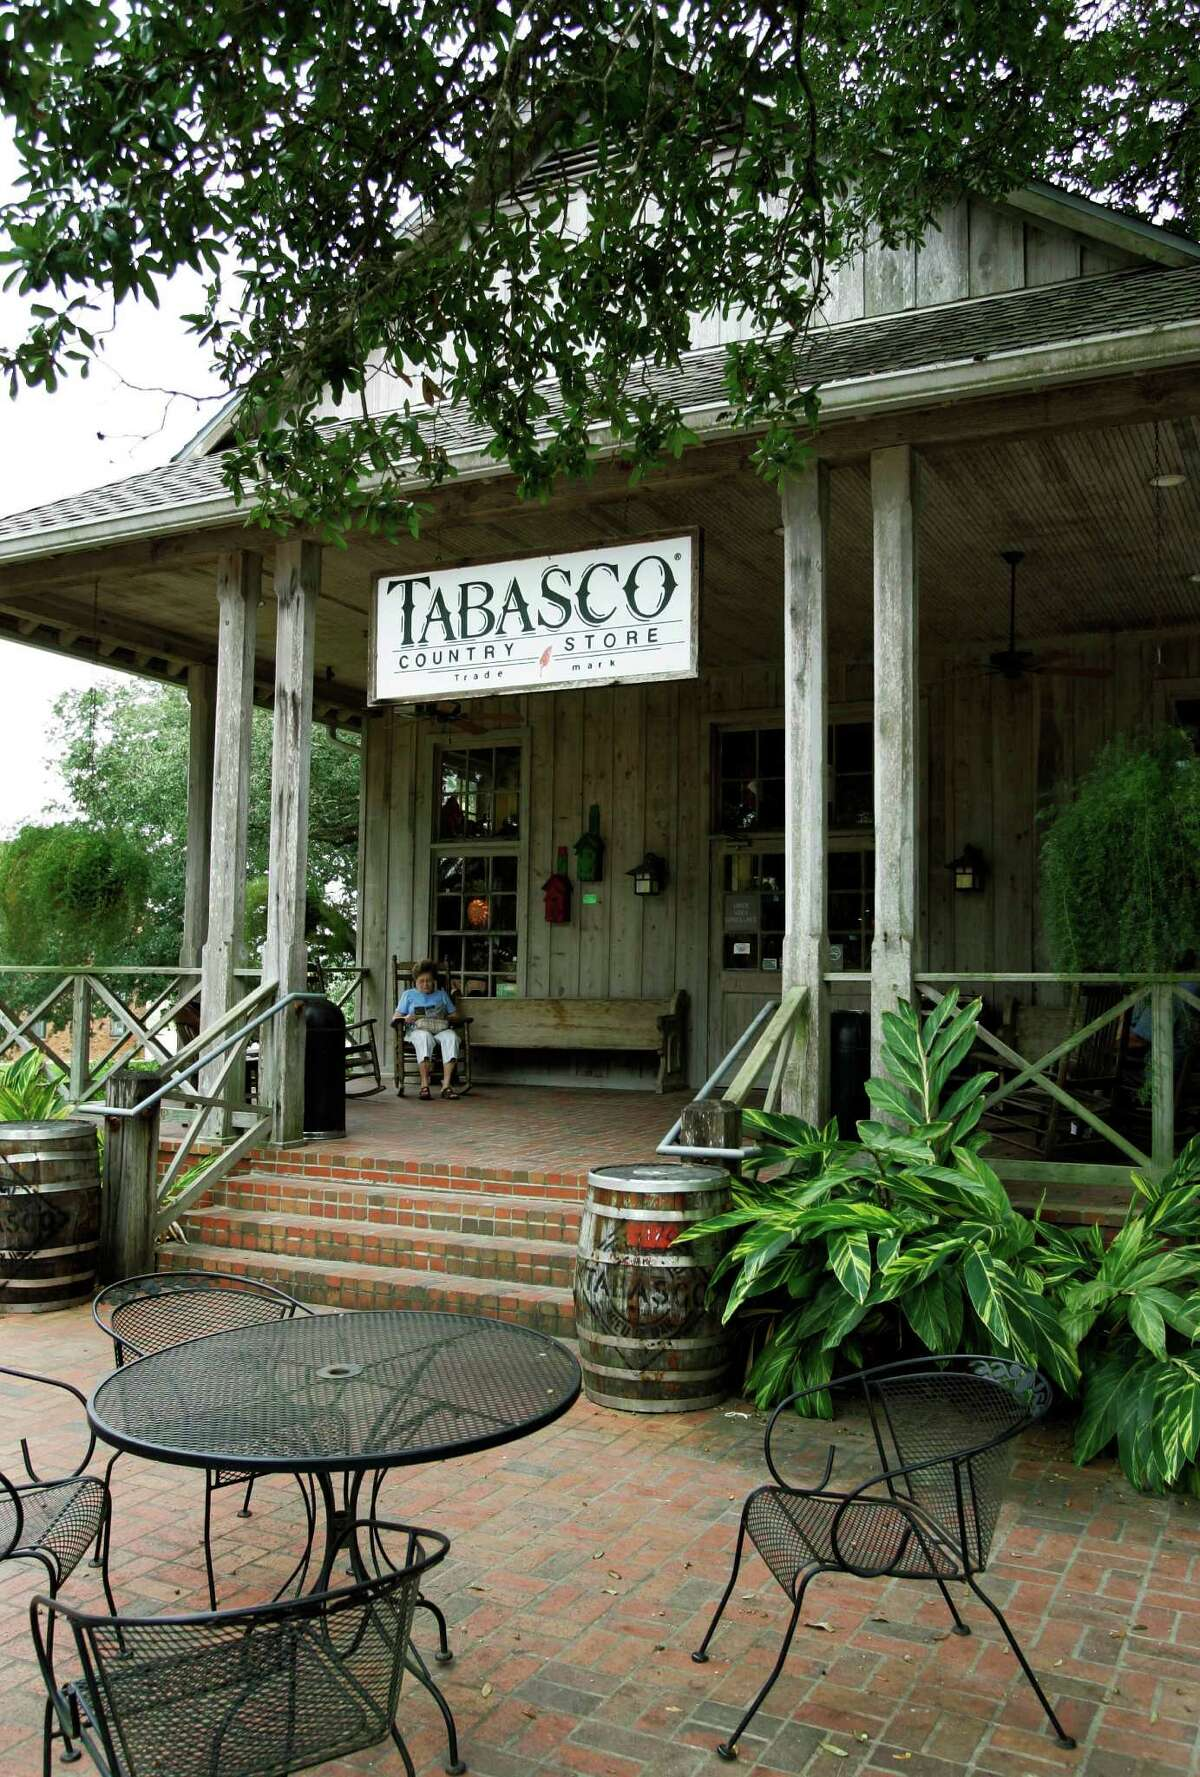 The Tabasco country store sells a variety of Tabasco products at Avery Island, La.